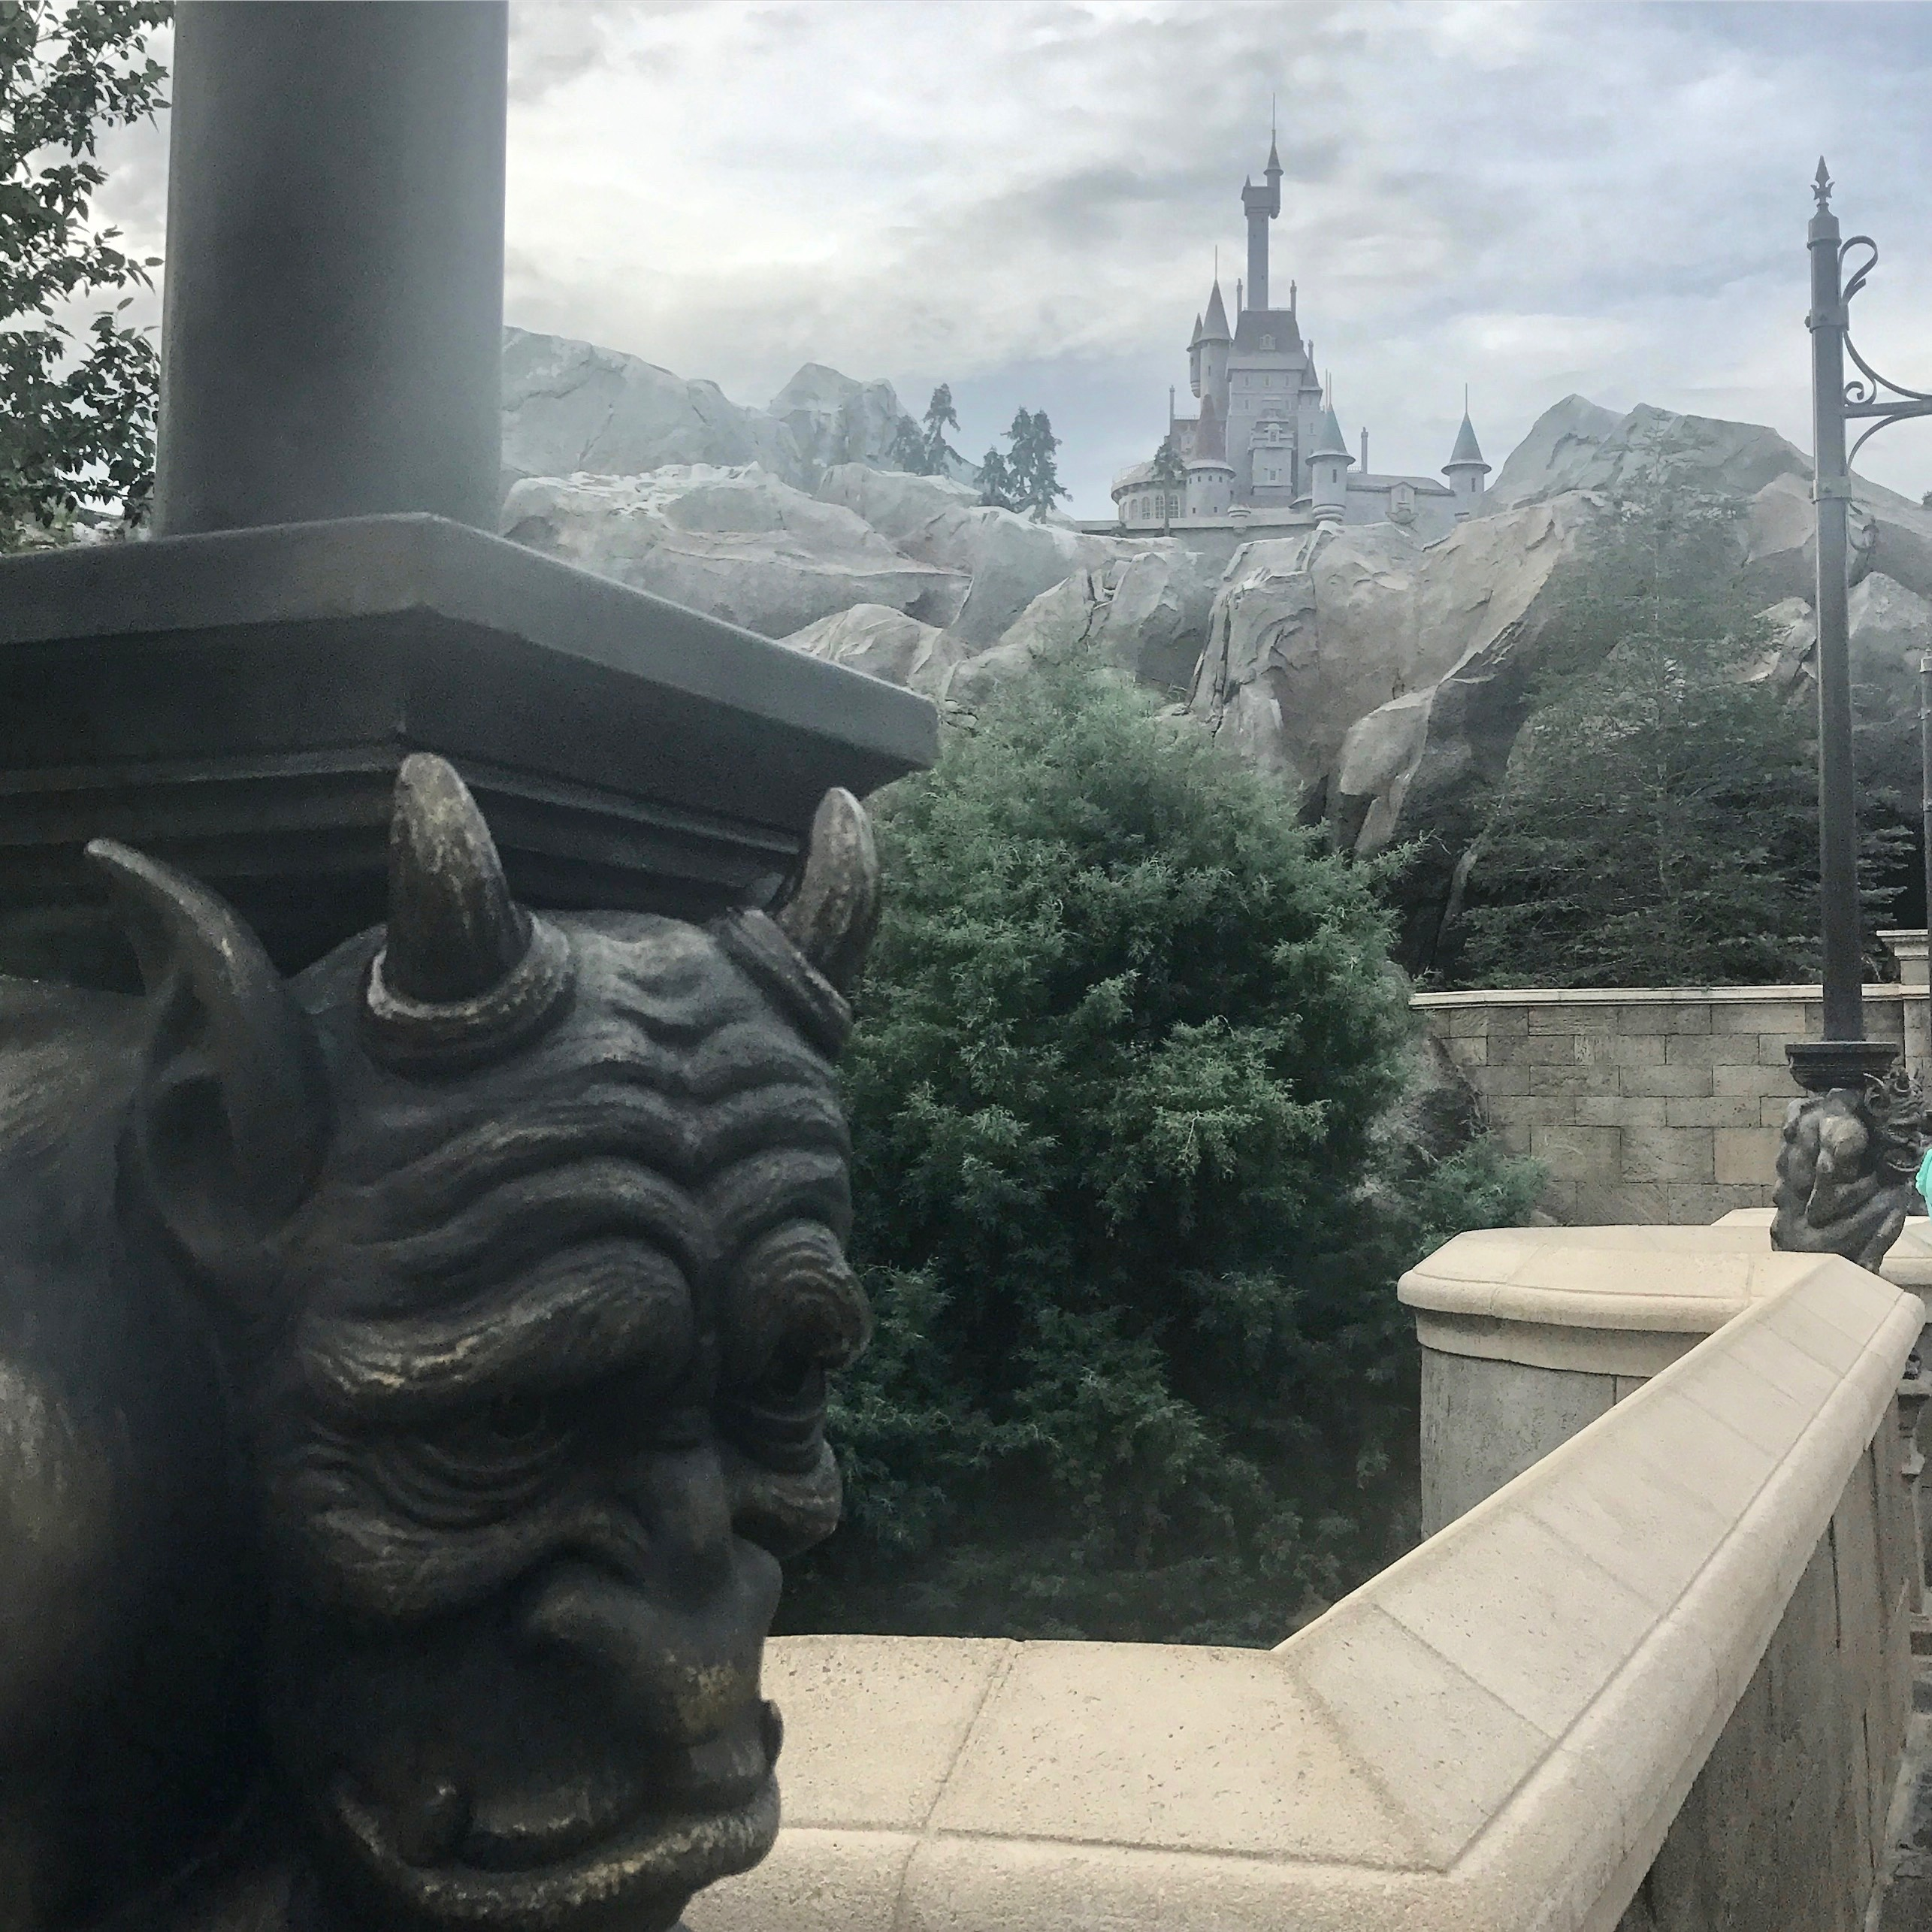 beasts-castle-magic-kingdom